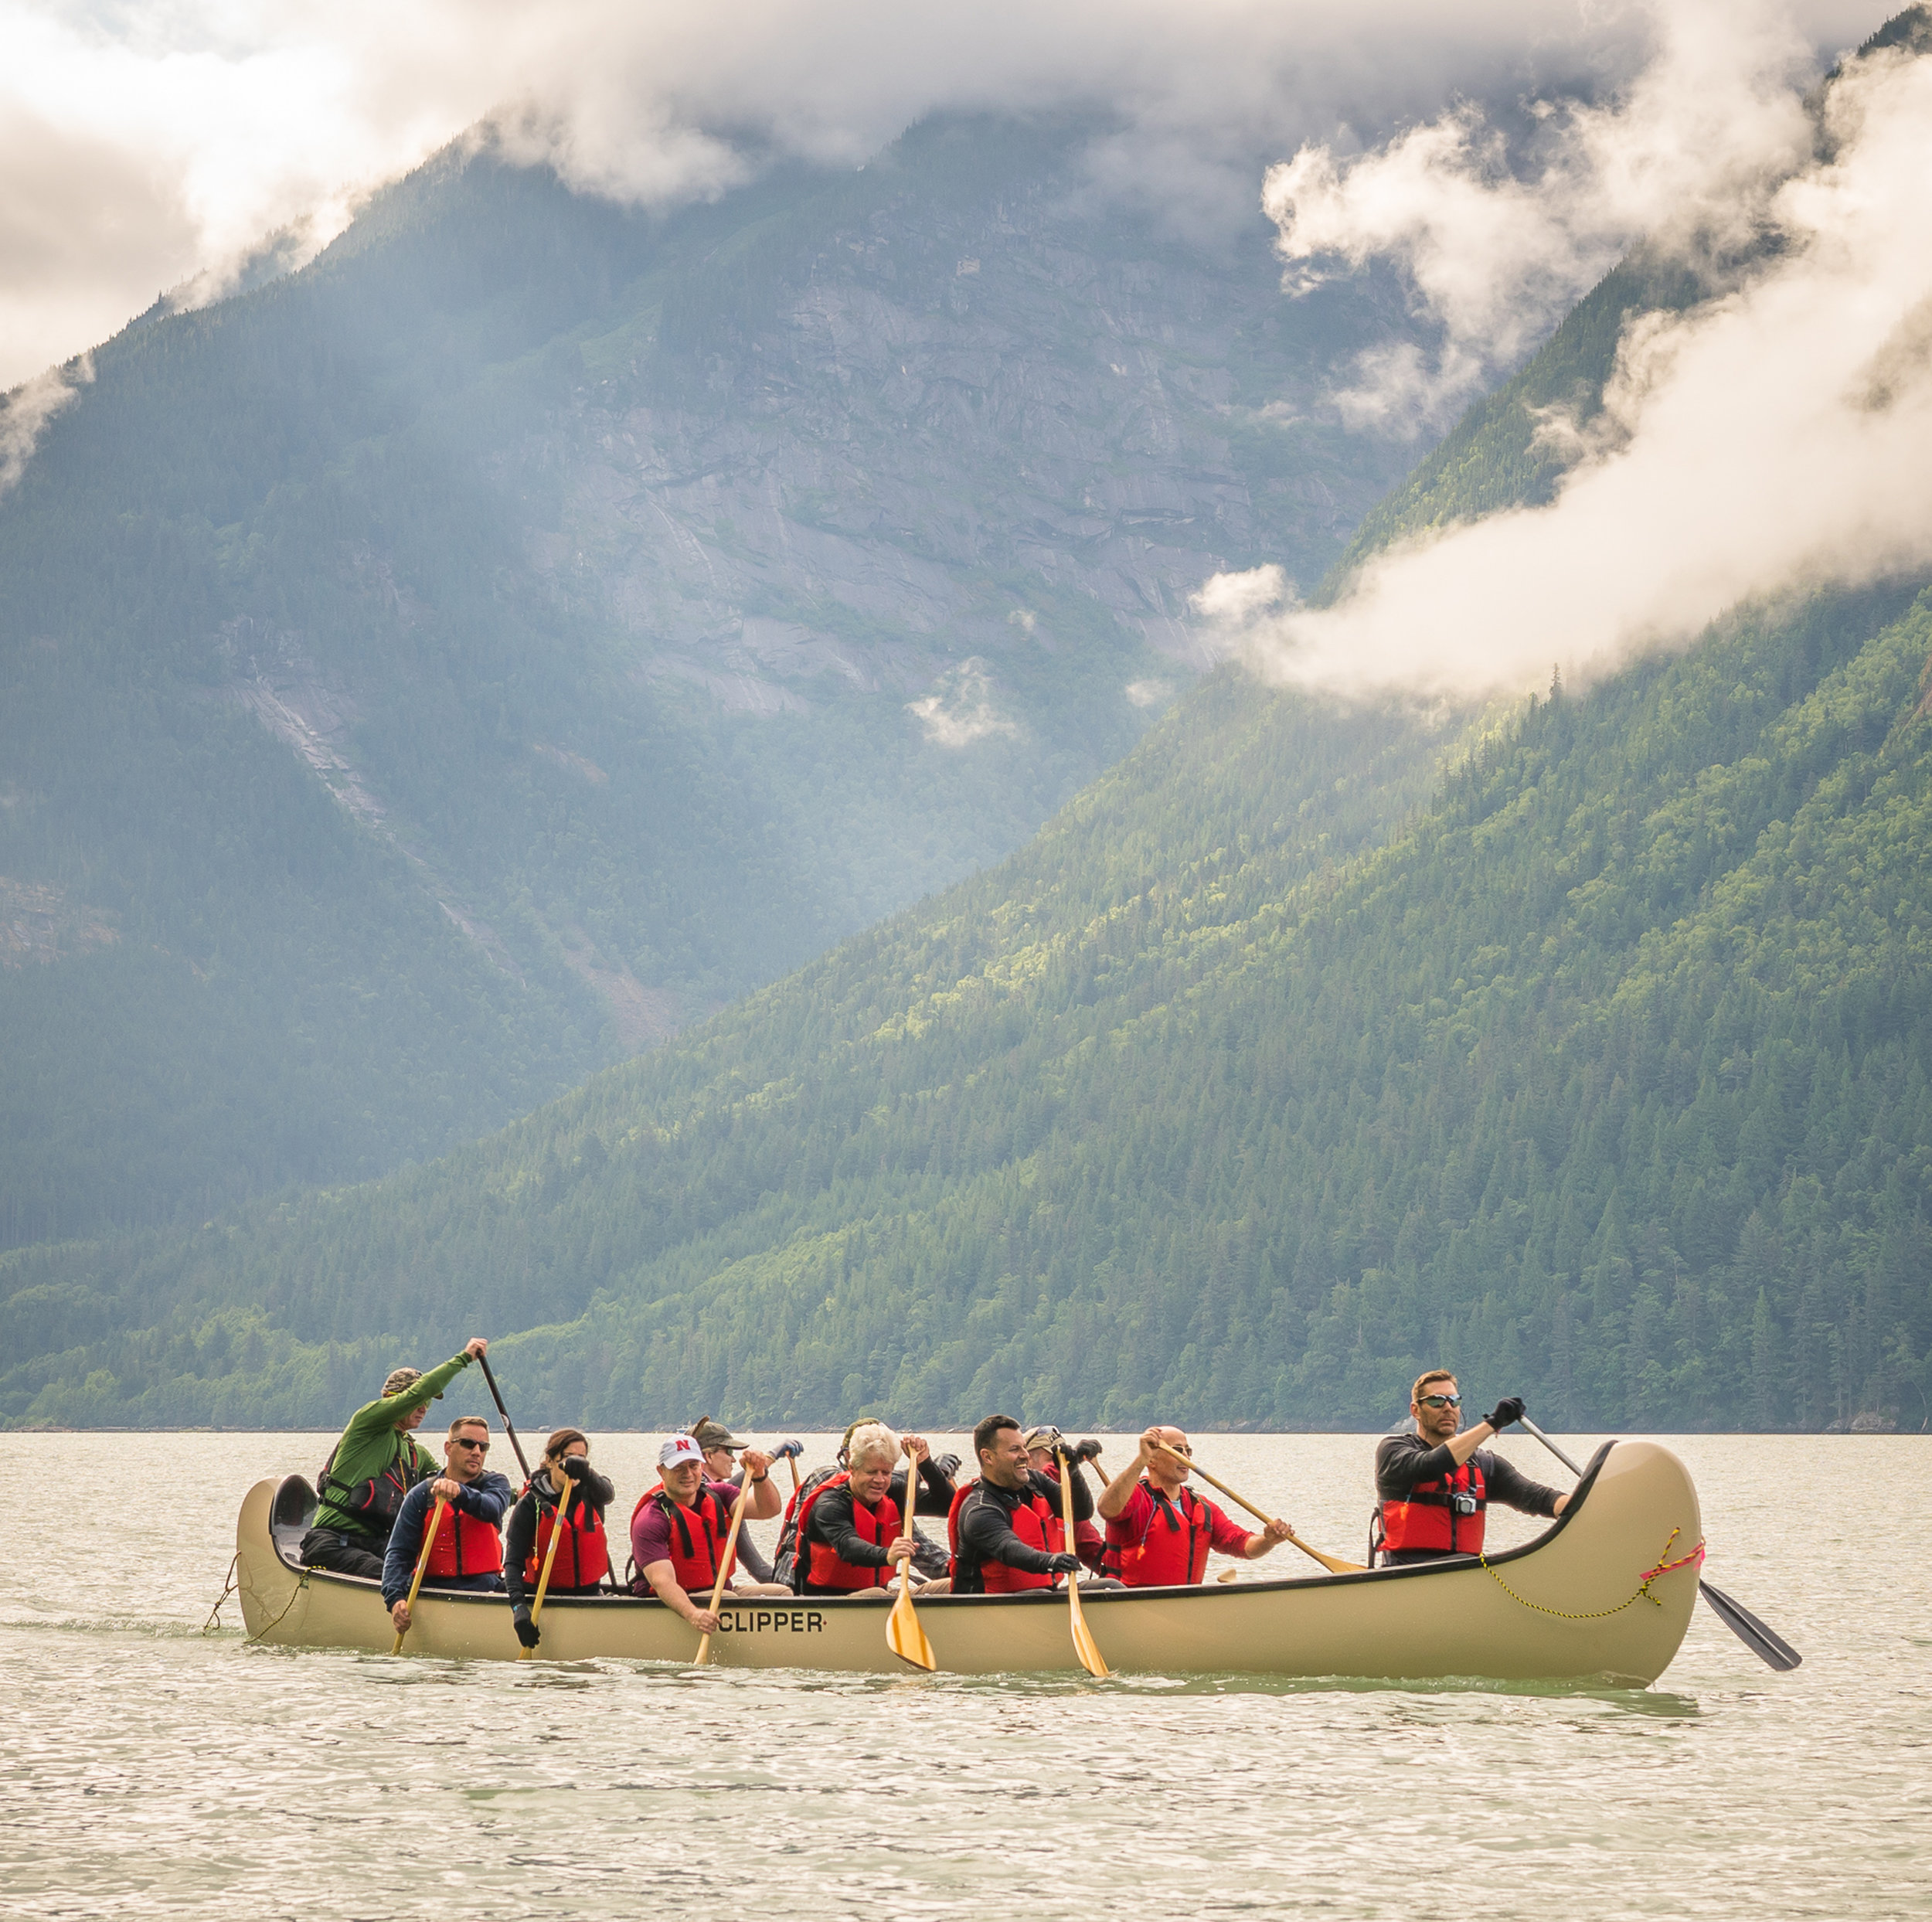 Rafting / Ocean Paddling - Bella Coola, BC  Date: July 2017 Objective: Hike, Raft and Ocean paddle to MacKenzie inscription from Tweedsmuir National Park.